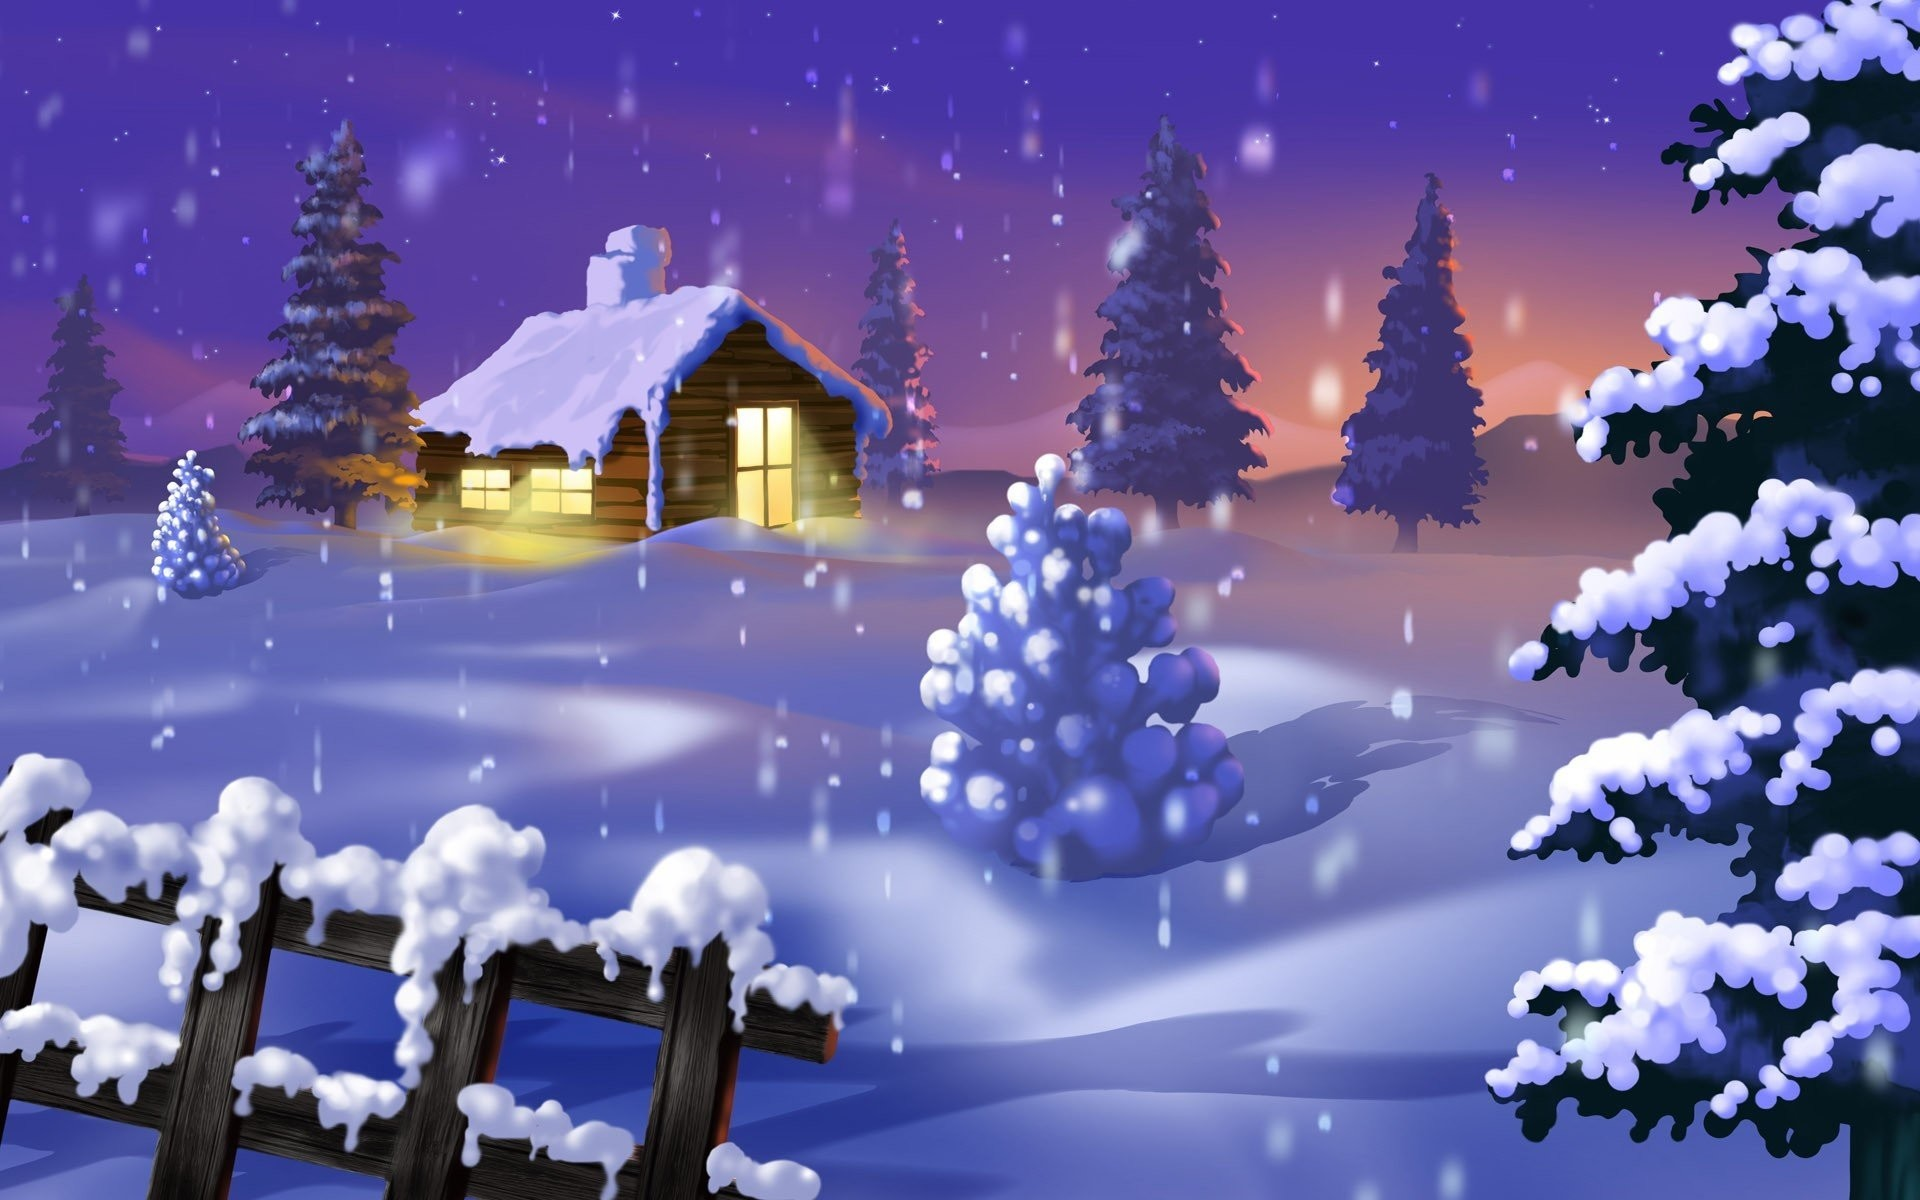 Winter Christmas Backgrounds: Winter Christmas Desktop Backgrounds ·① WallpaperTag